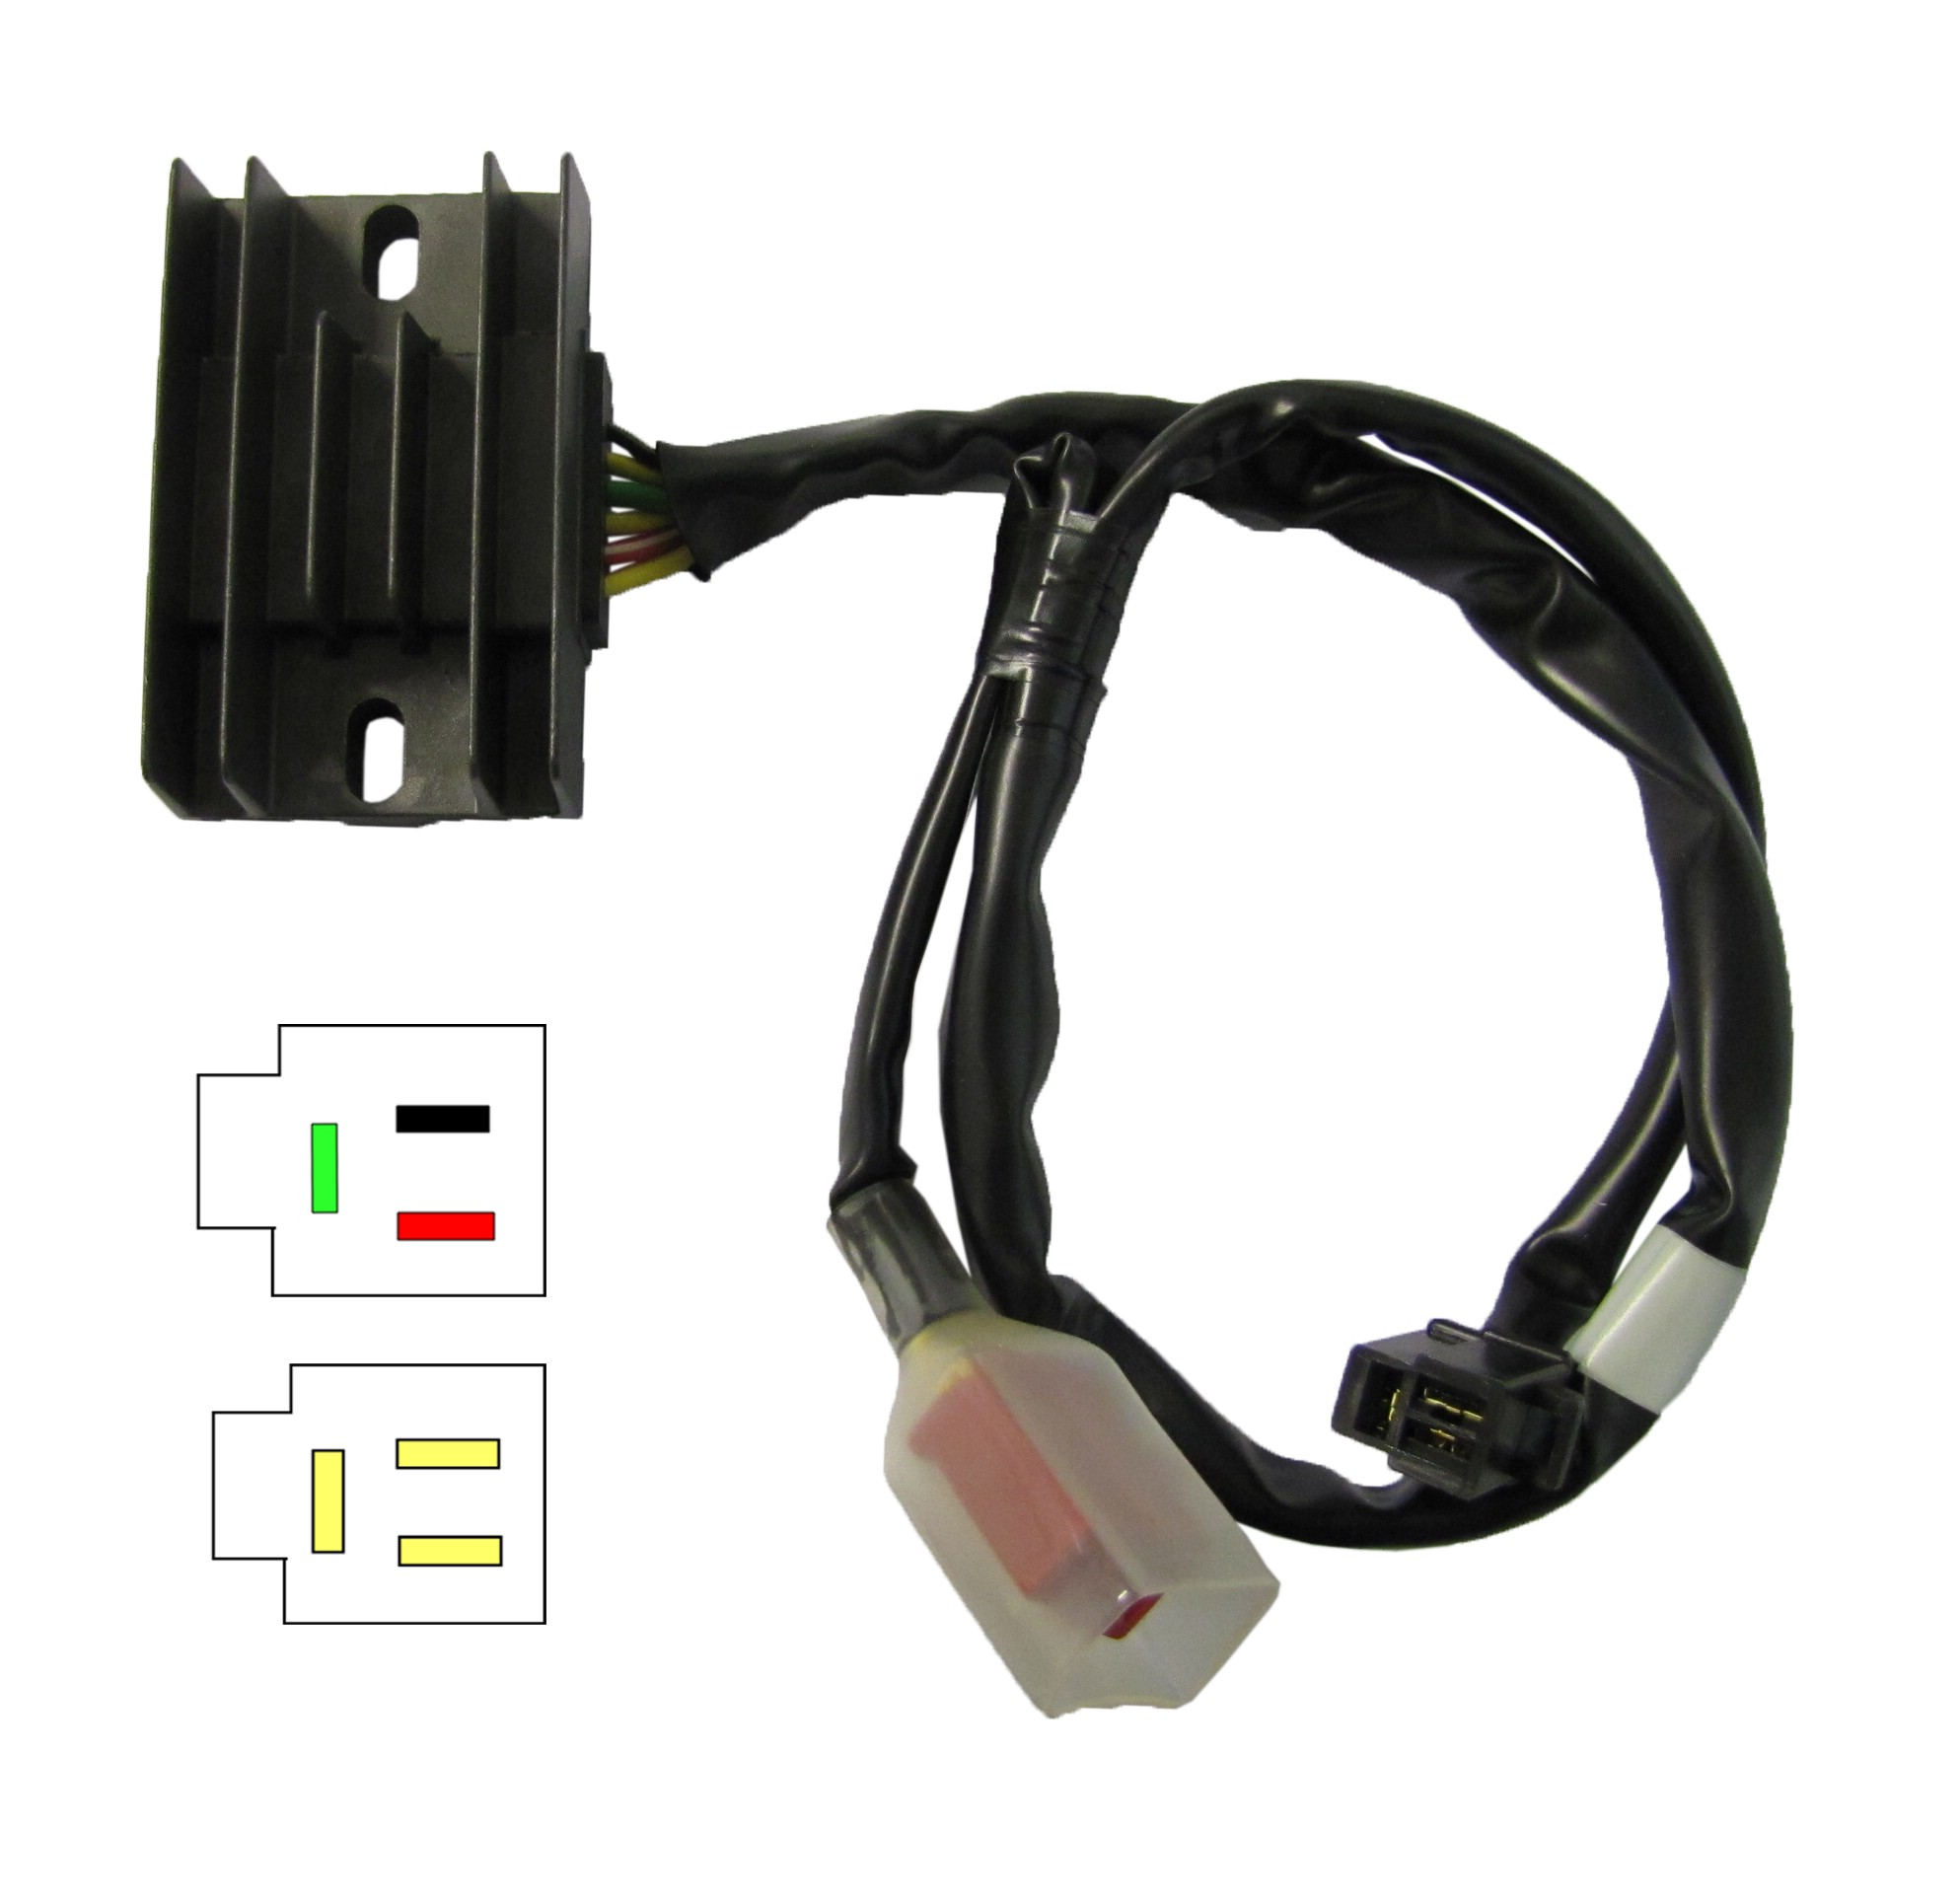 Regulator Rectifier Fits Honda Nx250 88 Each 31600 Kw3 010 1983 Shadow Motorcycle 1 Of 3only 4 Available See More